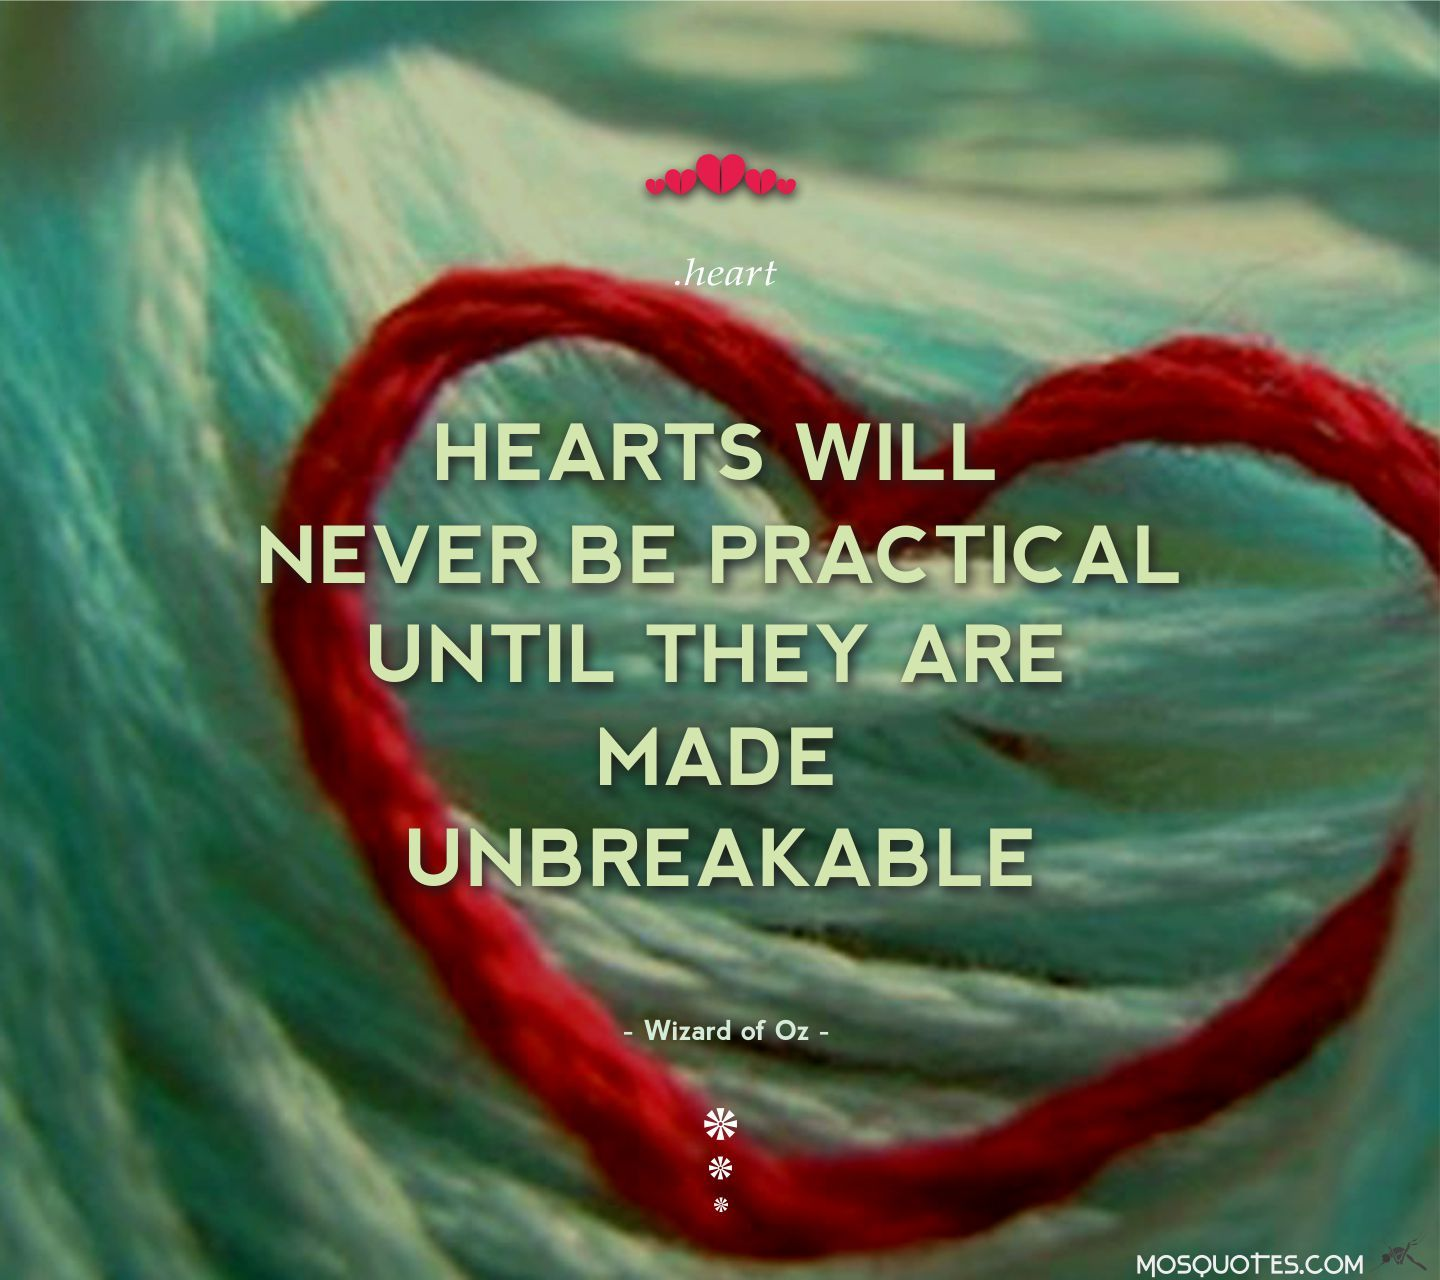 Wizard Of Oz Love Quotes Cute Love Quotes Hearts Will Never Be Practical Until They Are